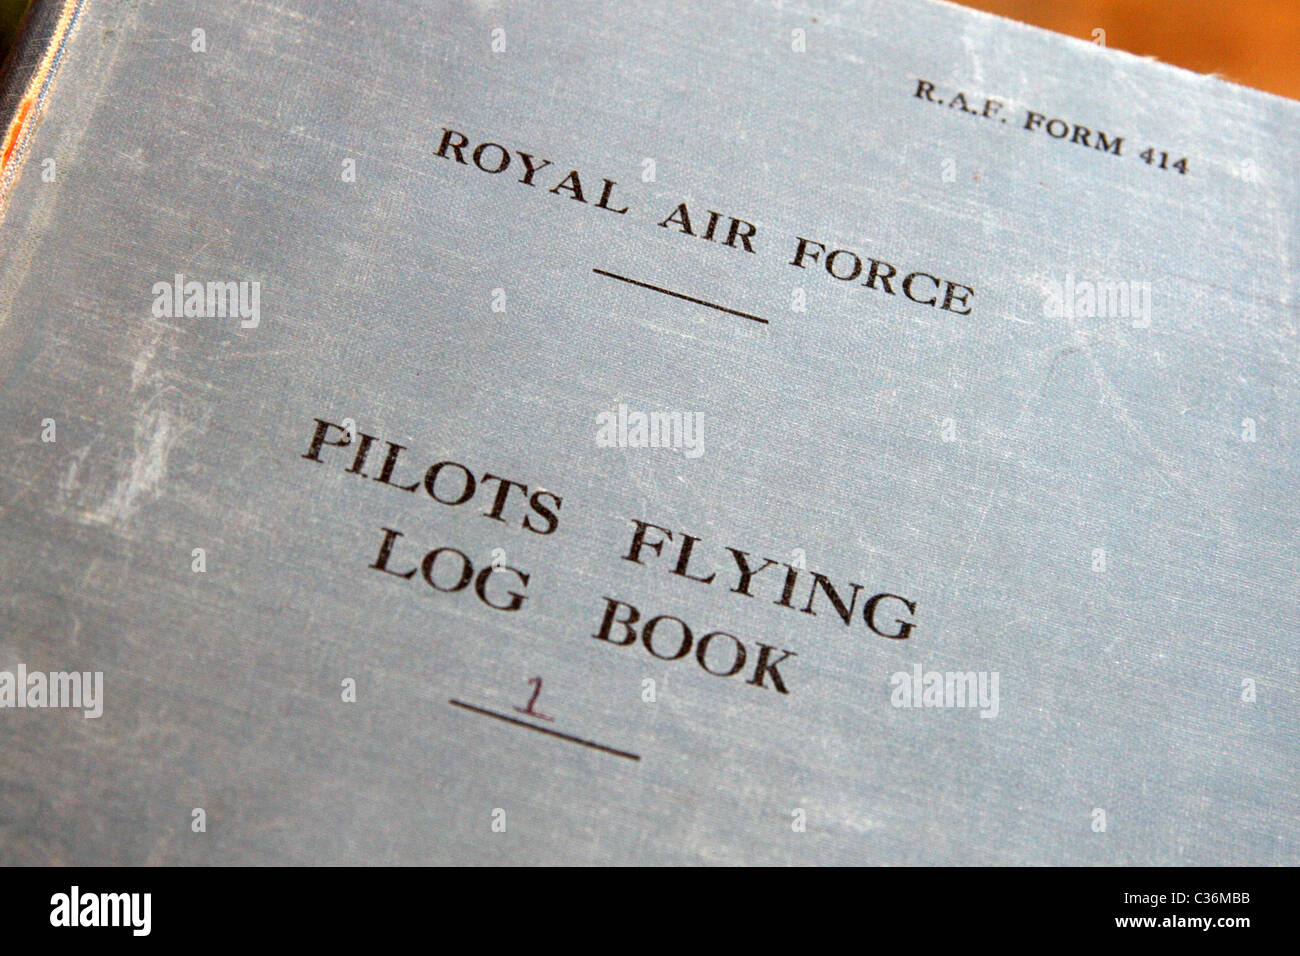 Guerra Mondiale 2 Royal Air Force piloti vola Log Book Immagini Stock